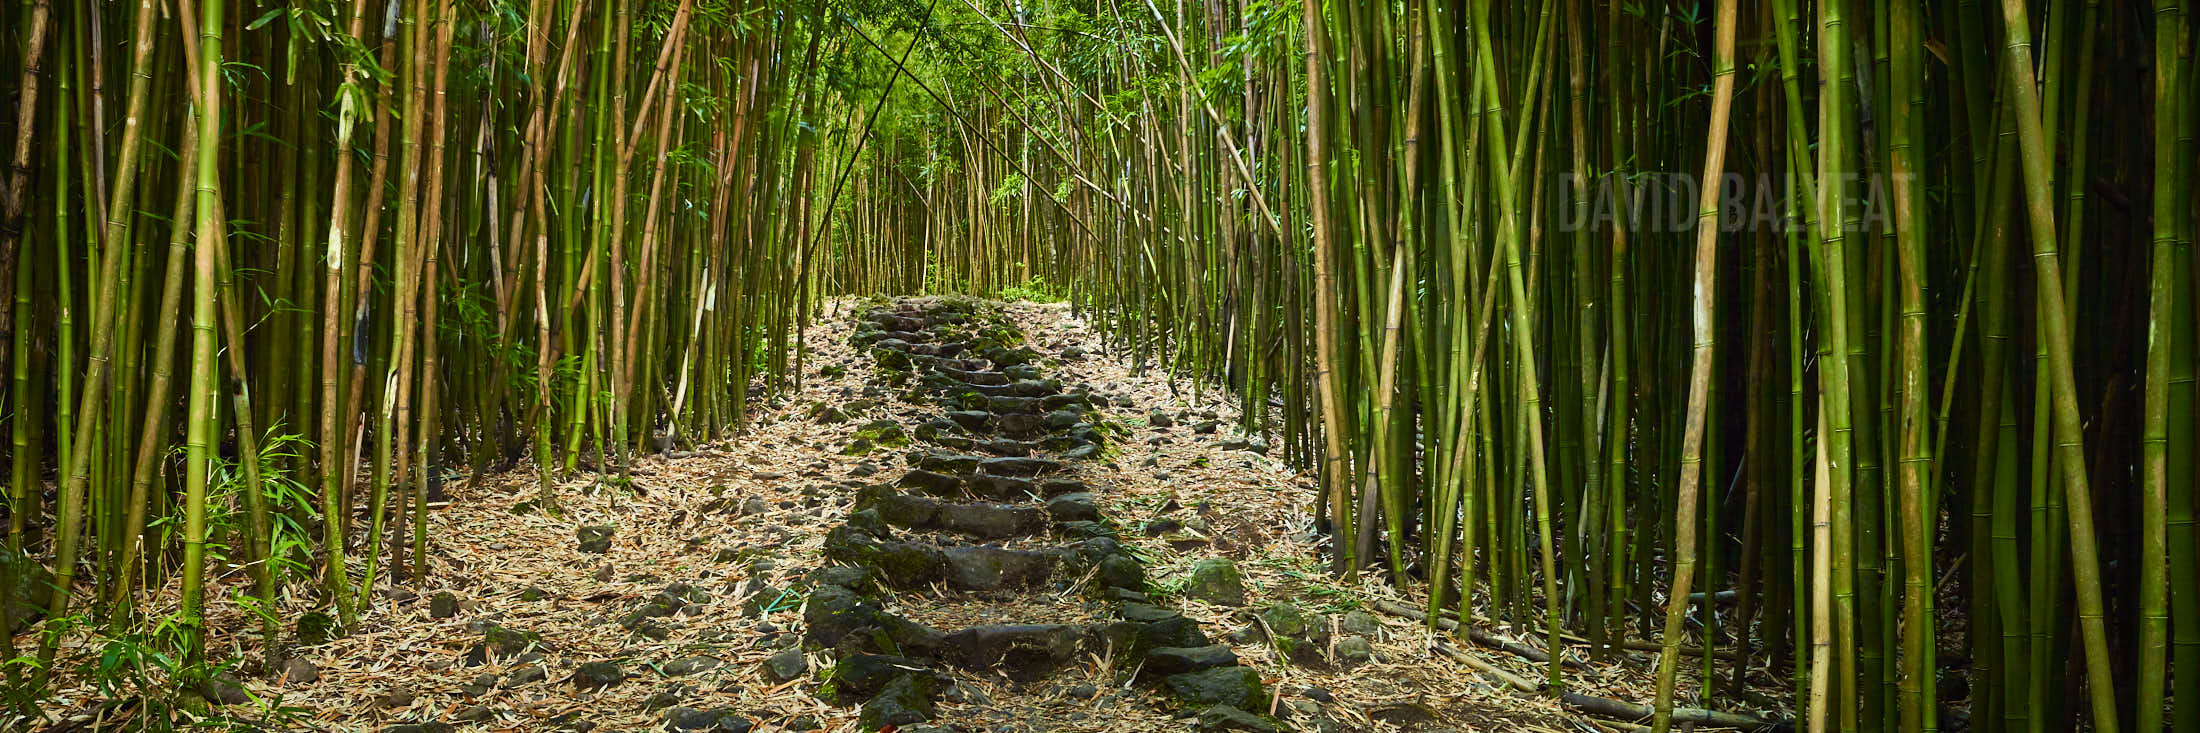 Bamboo forest steps to enlightenment david balyeat photography bamboo forest hana haleakala national park maui hawaii high definition hd professional landscape photography publicscrutiny Gallery